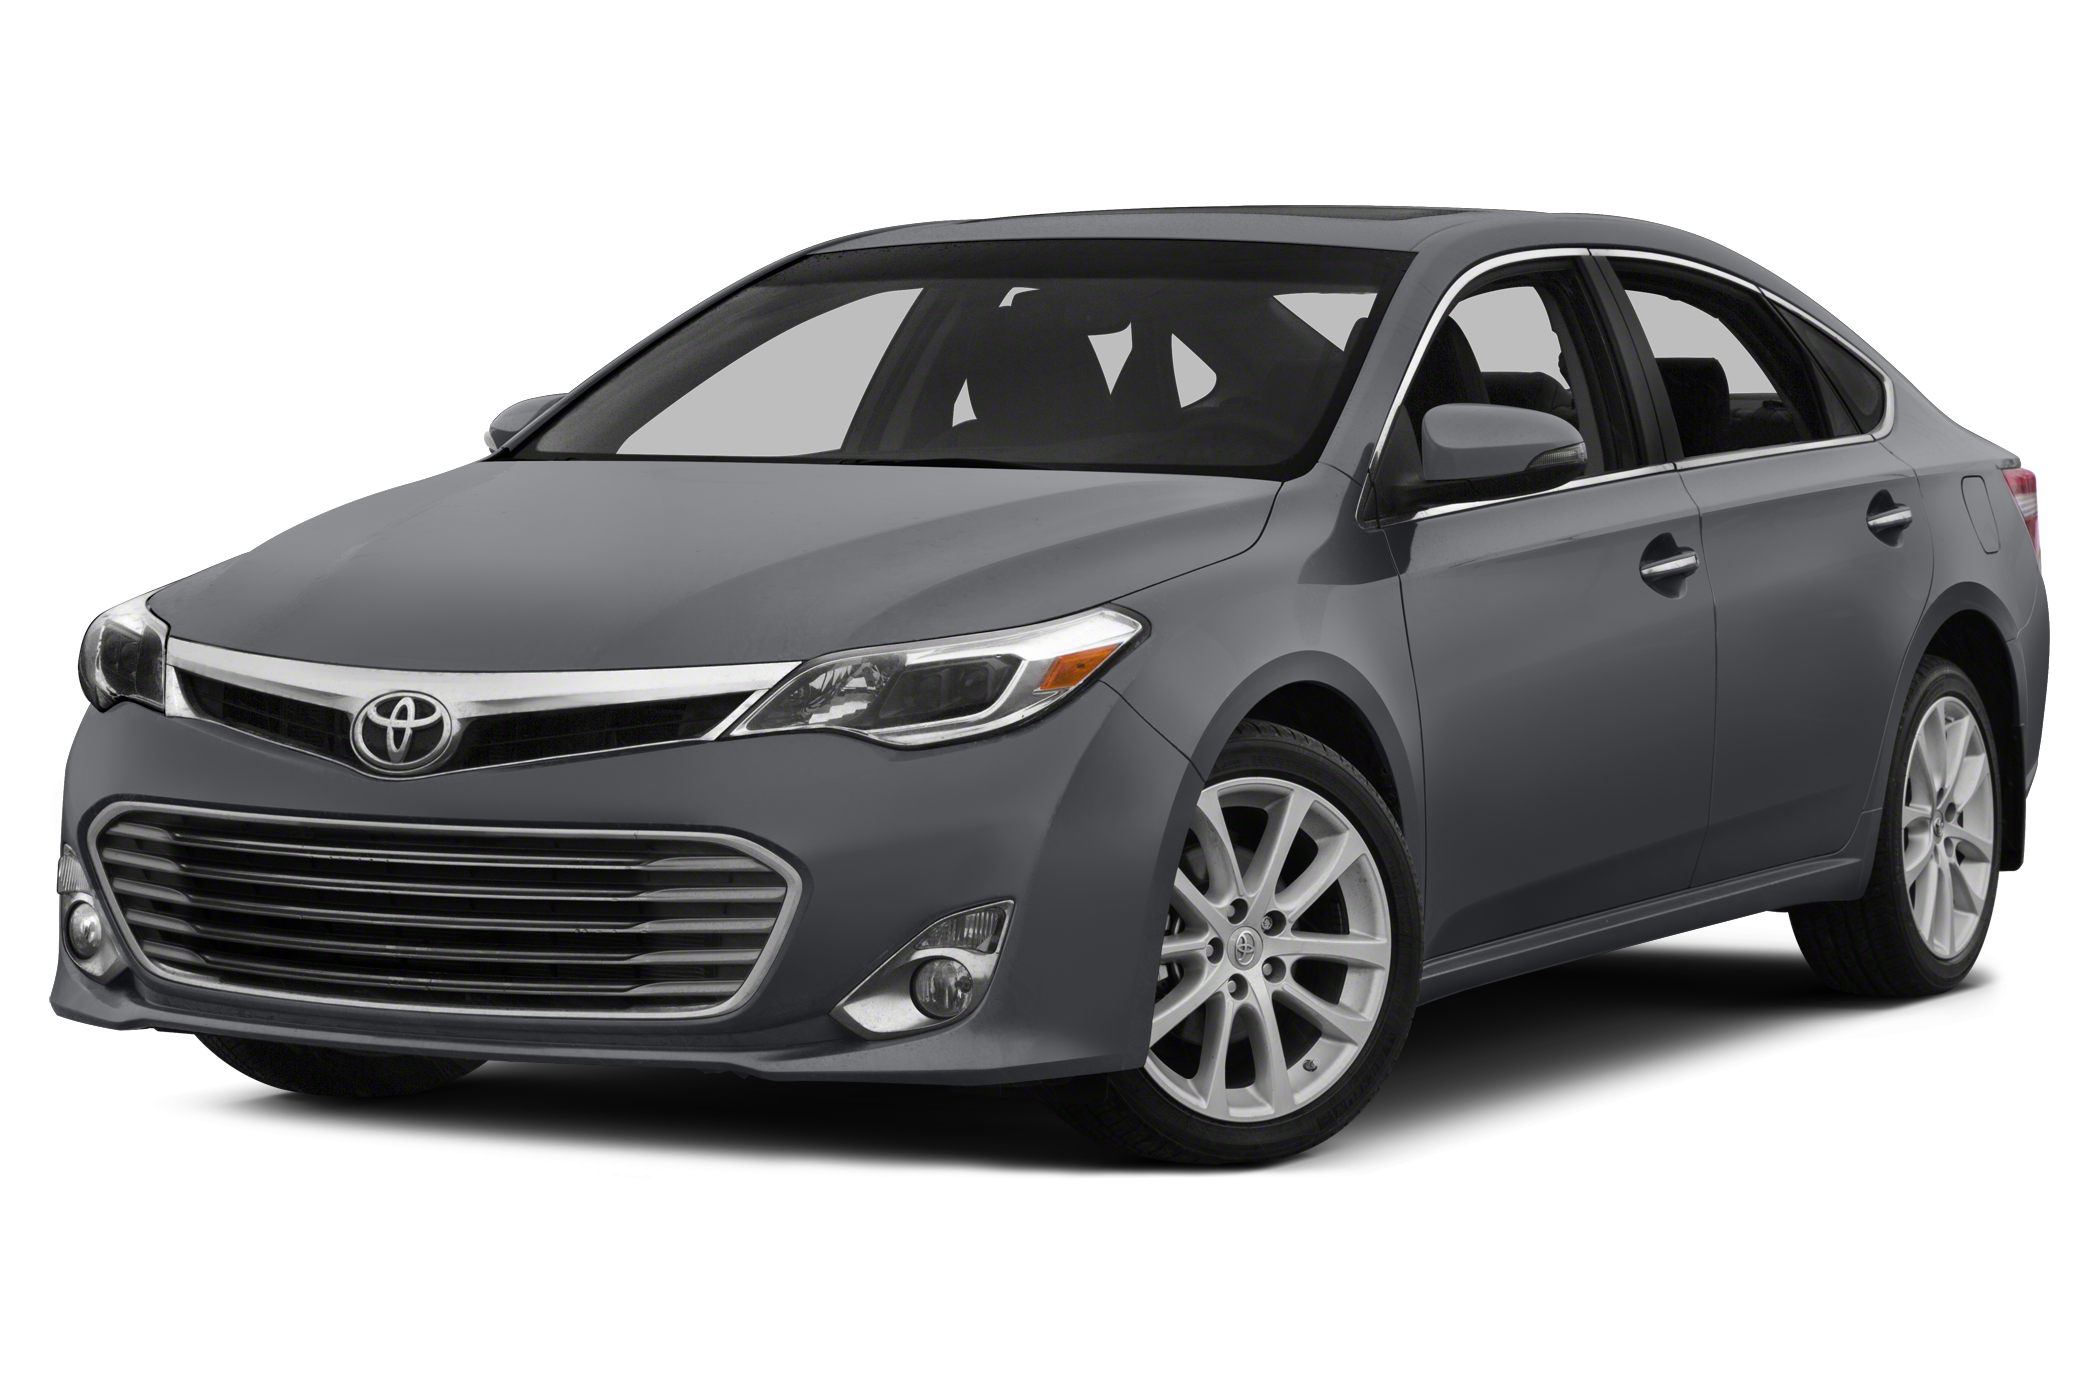 2015 Toyota Avalon Specs and Prices